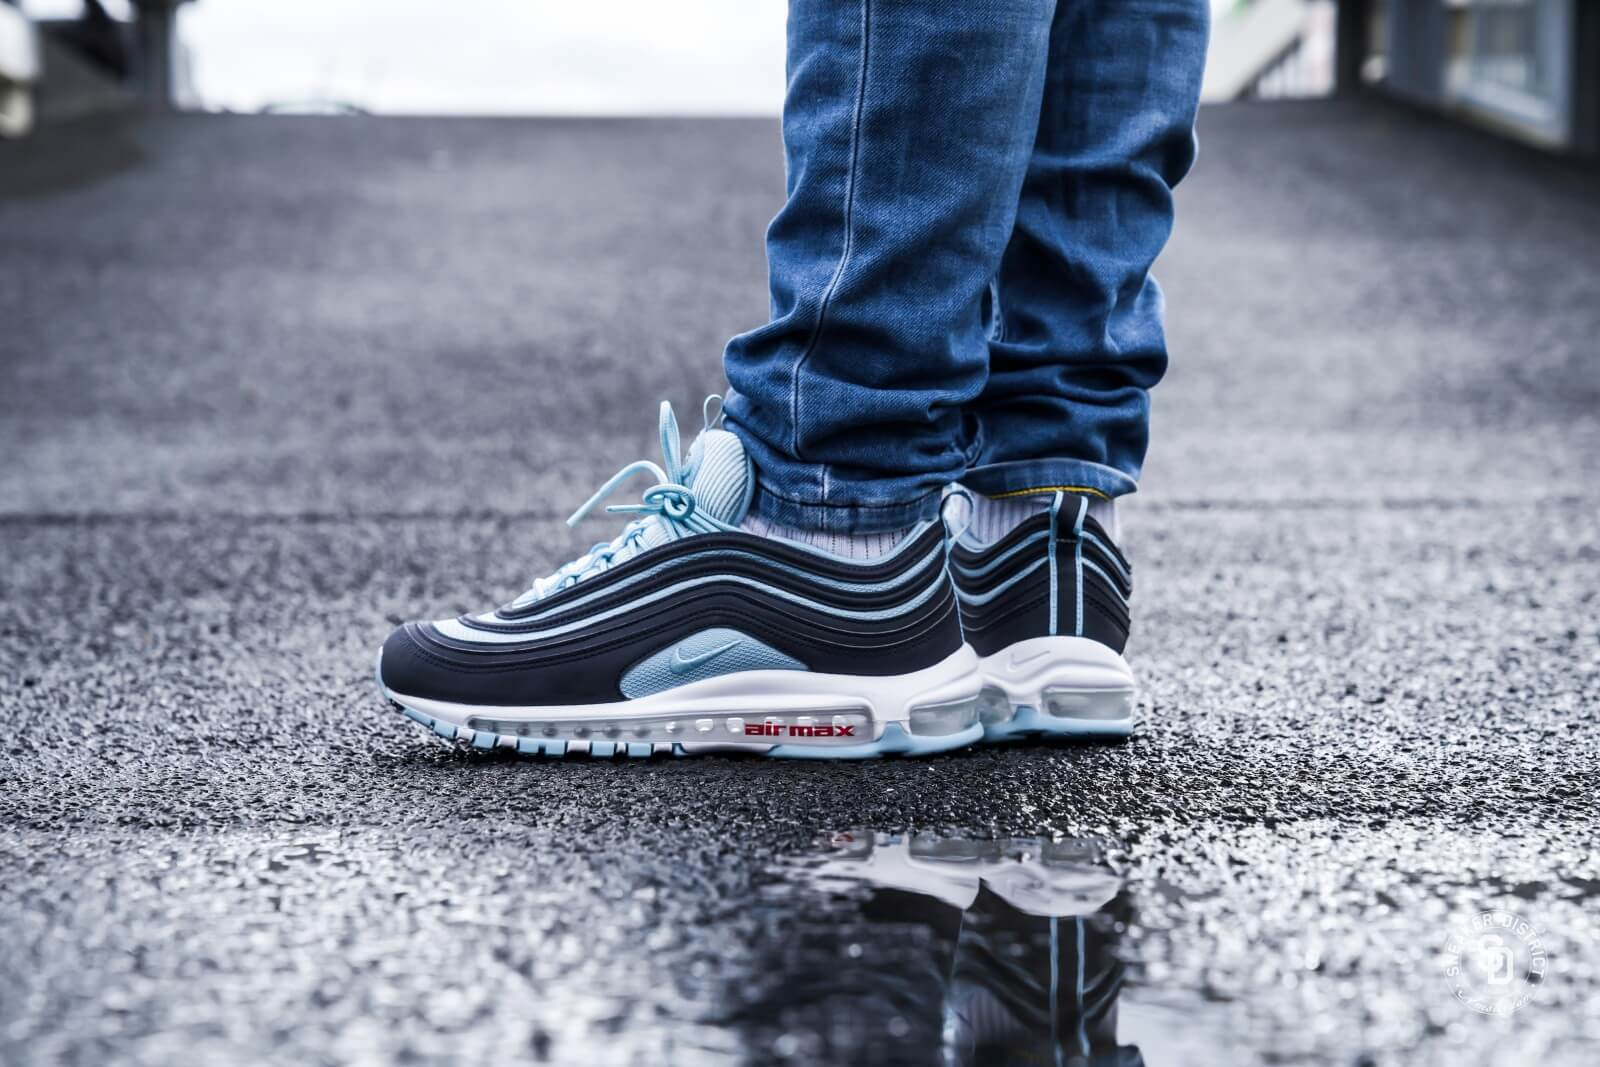 nike air max 97 ocean bliss